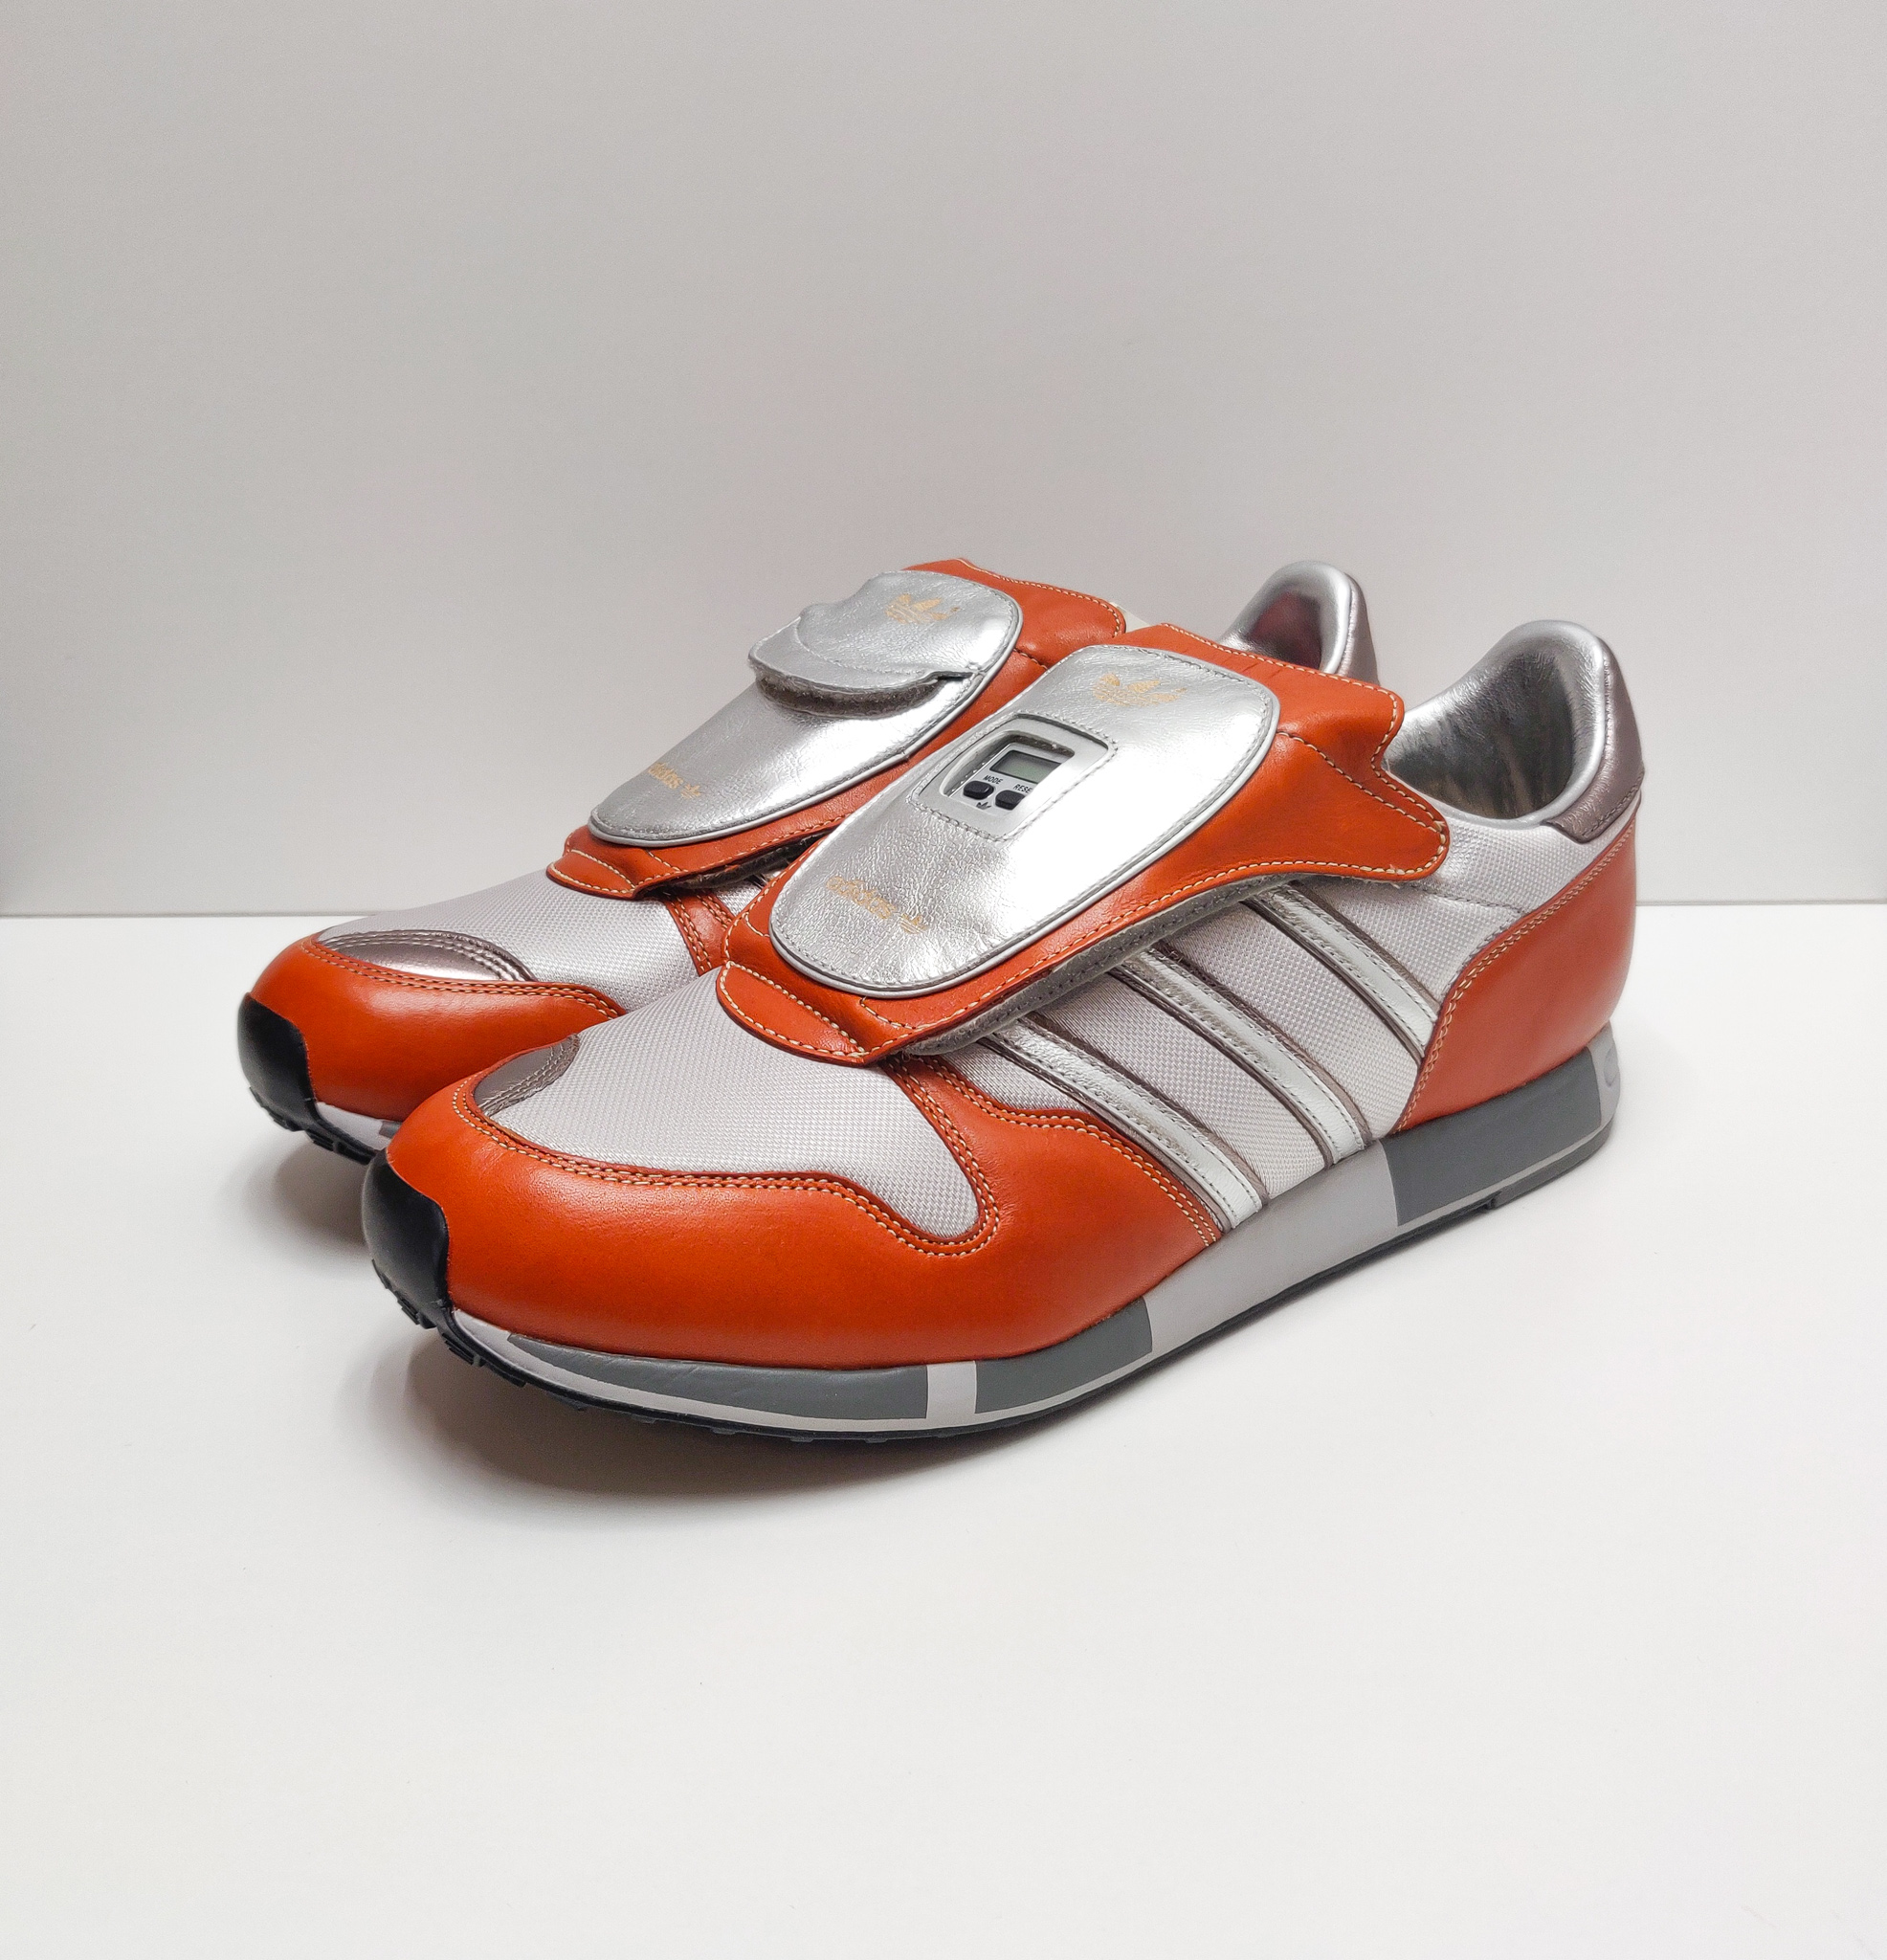 Adidas Micropacer Phone